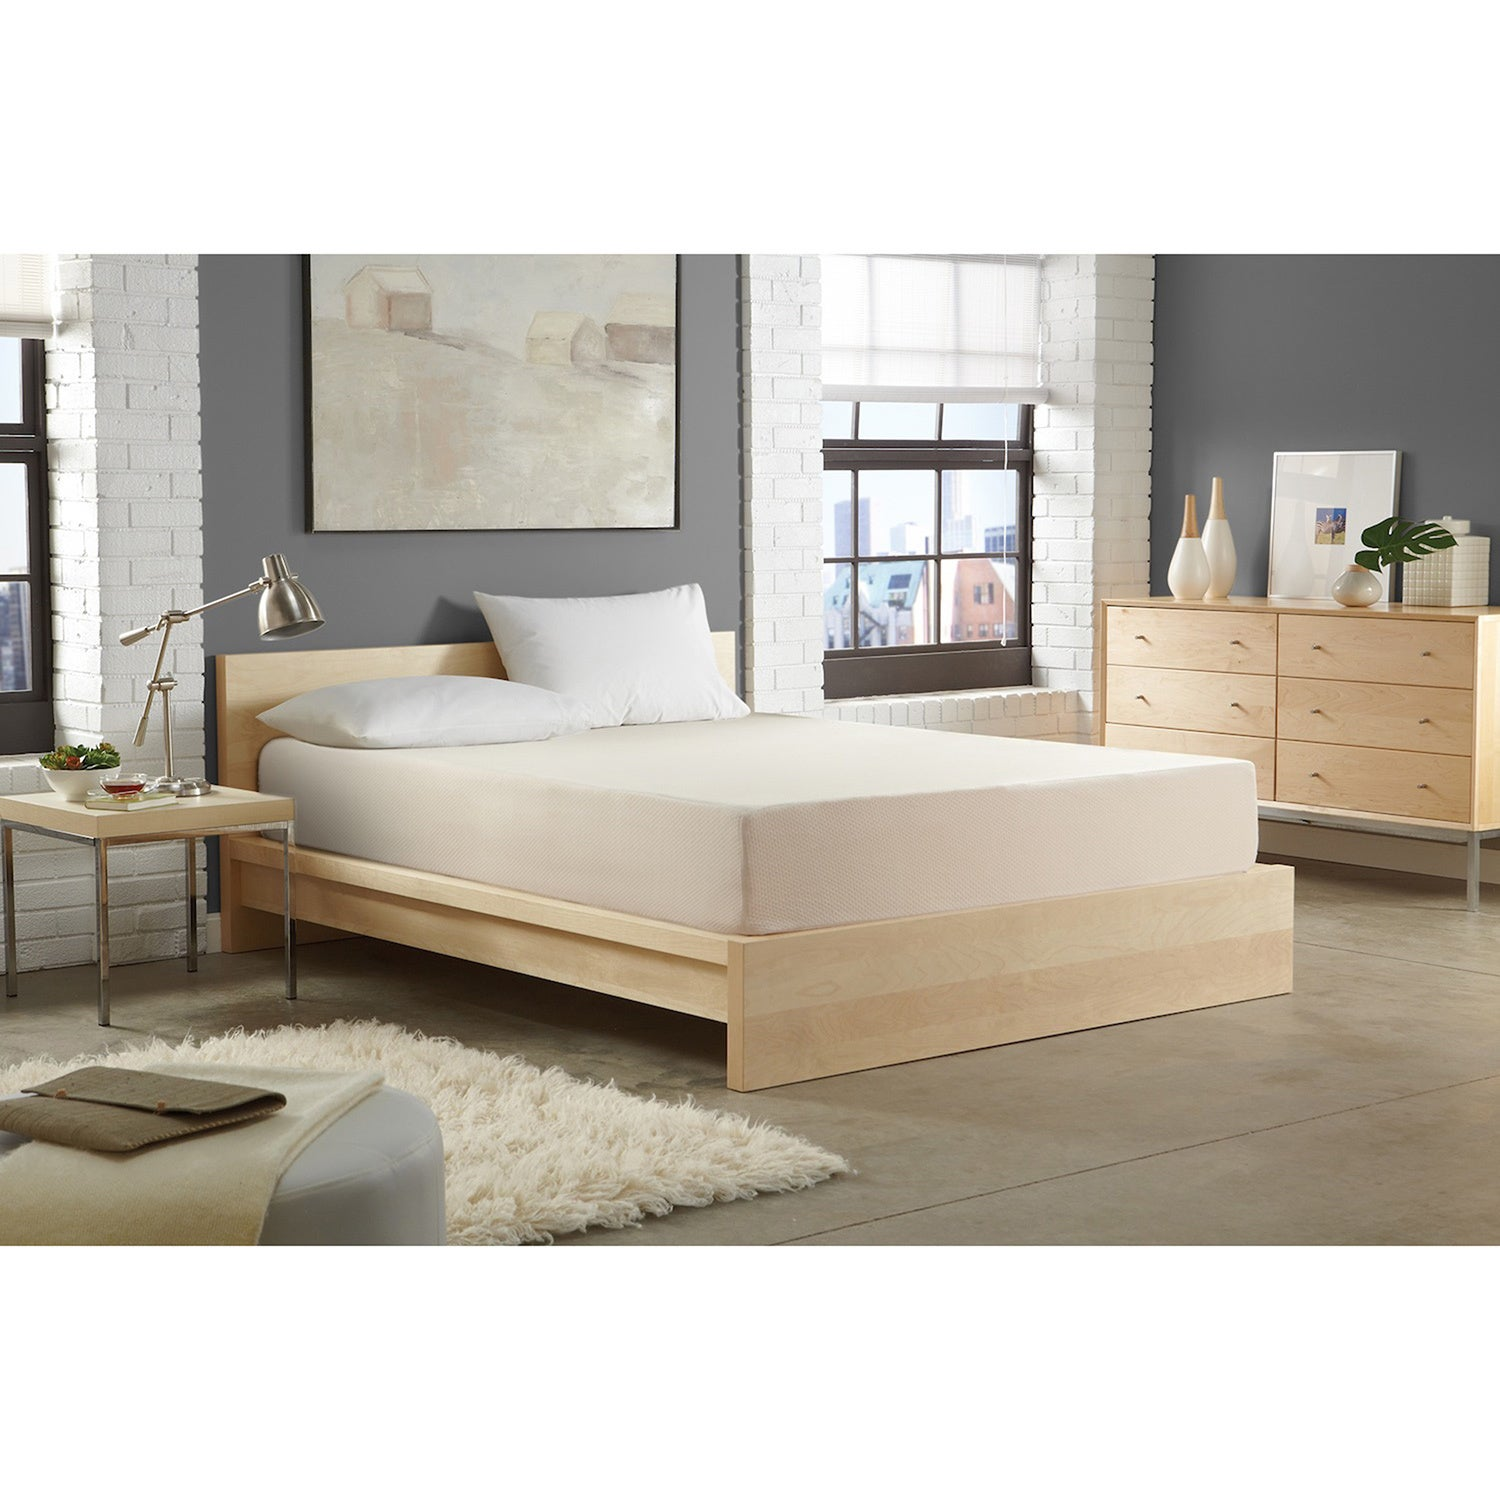 WHITE by Sarah Peyton Home Collection WHITE by Sarah Peyton 8-inch Convection Cooled Firm Support Twin-size Memory Foam Mattress at Sears.com